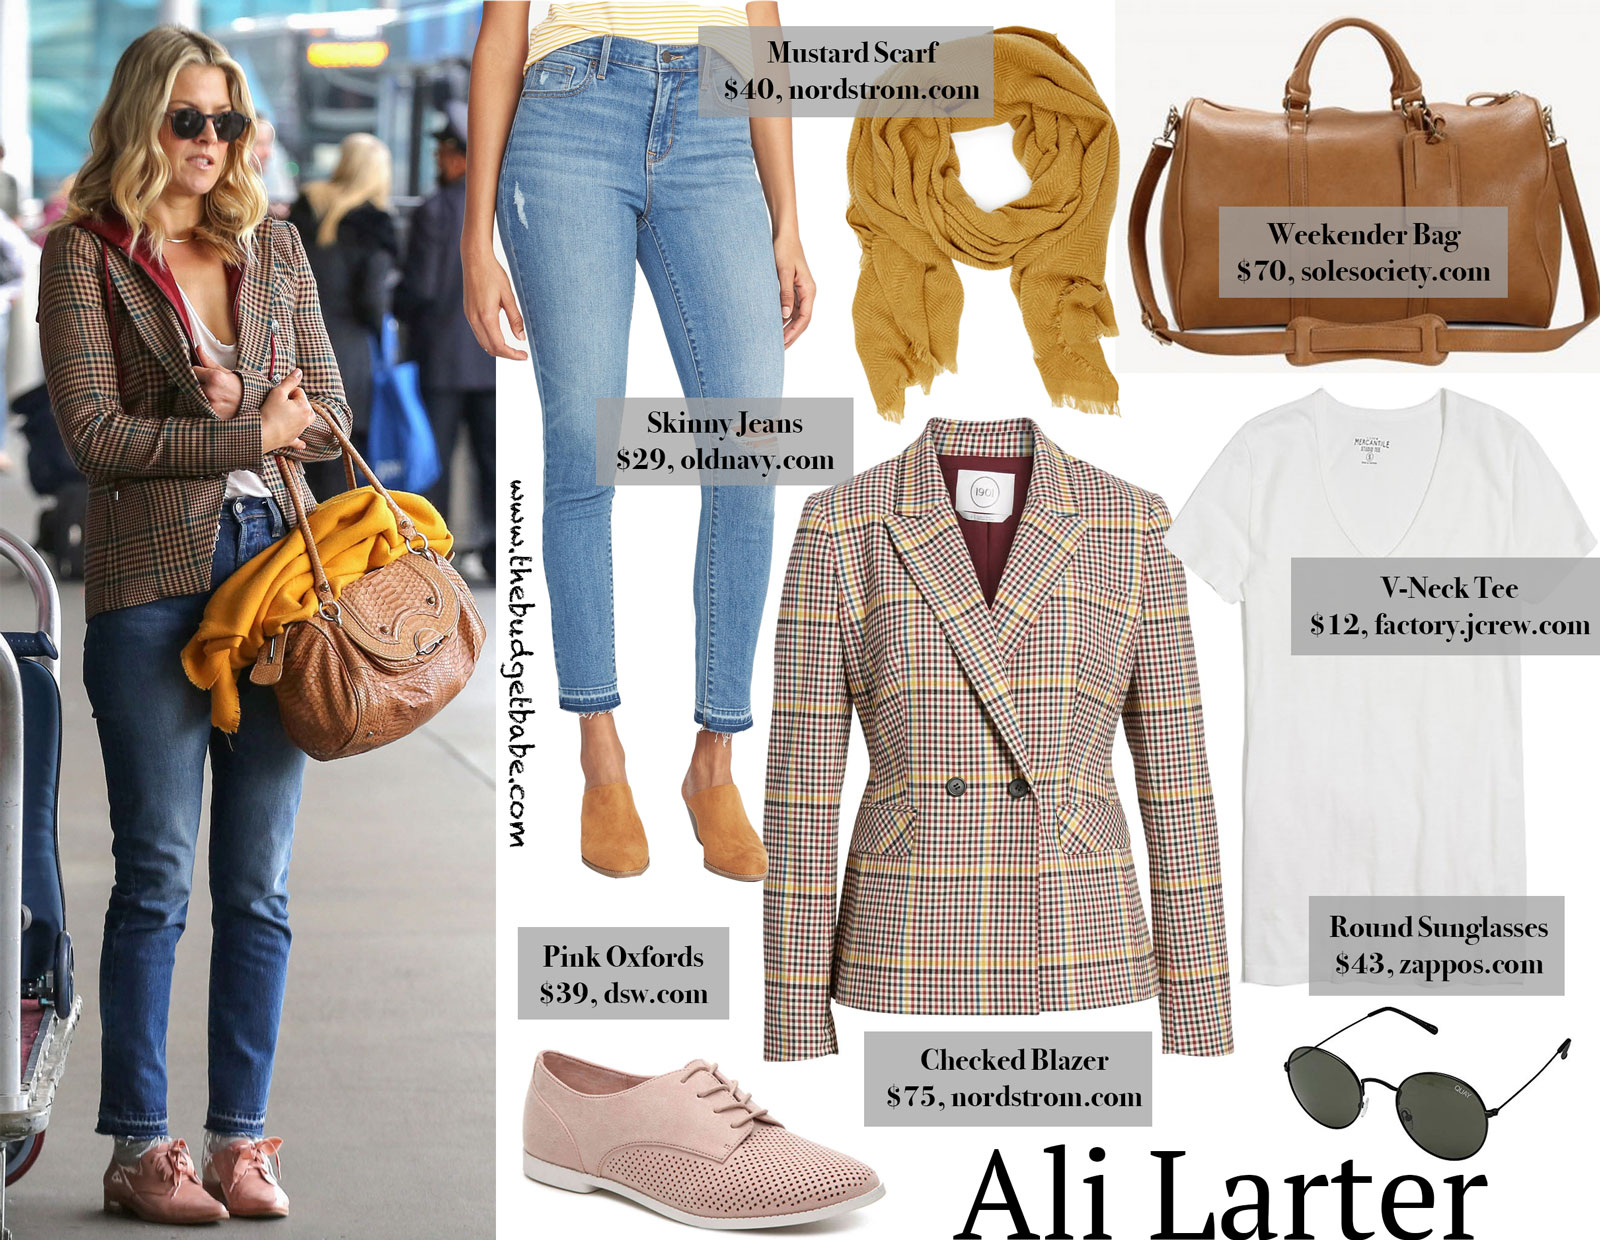 Ali Larter Checked Blazer and Oxford Shoes Look for Less